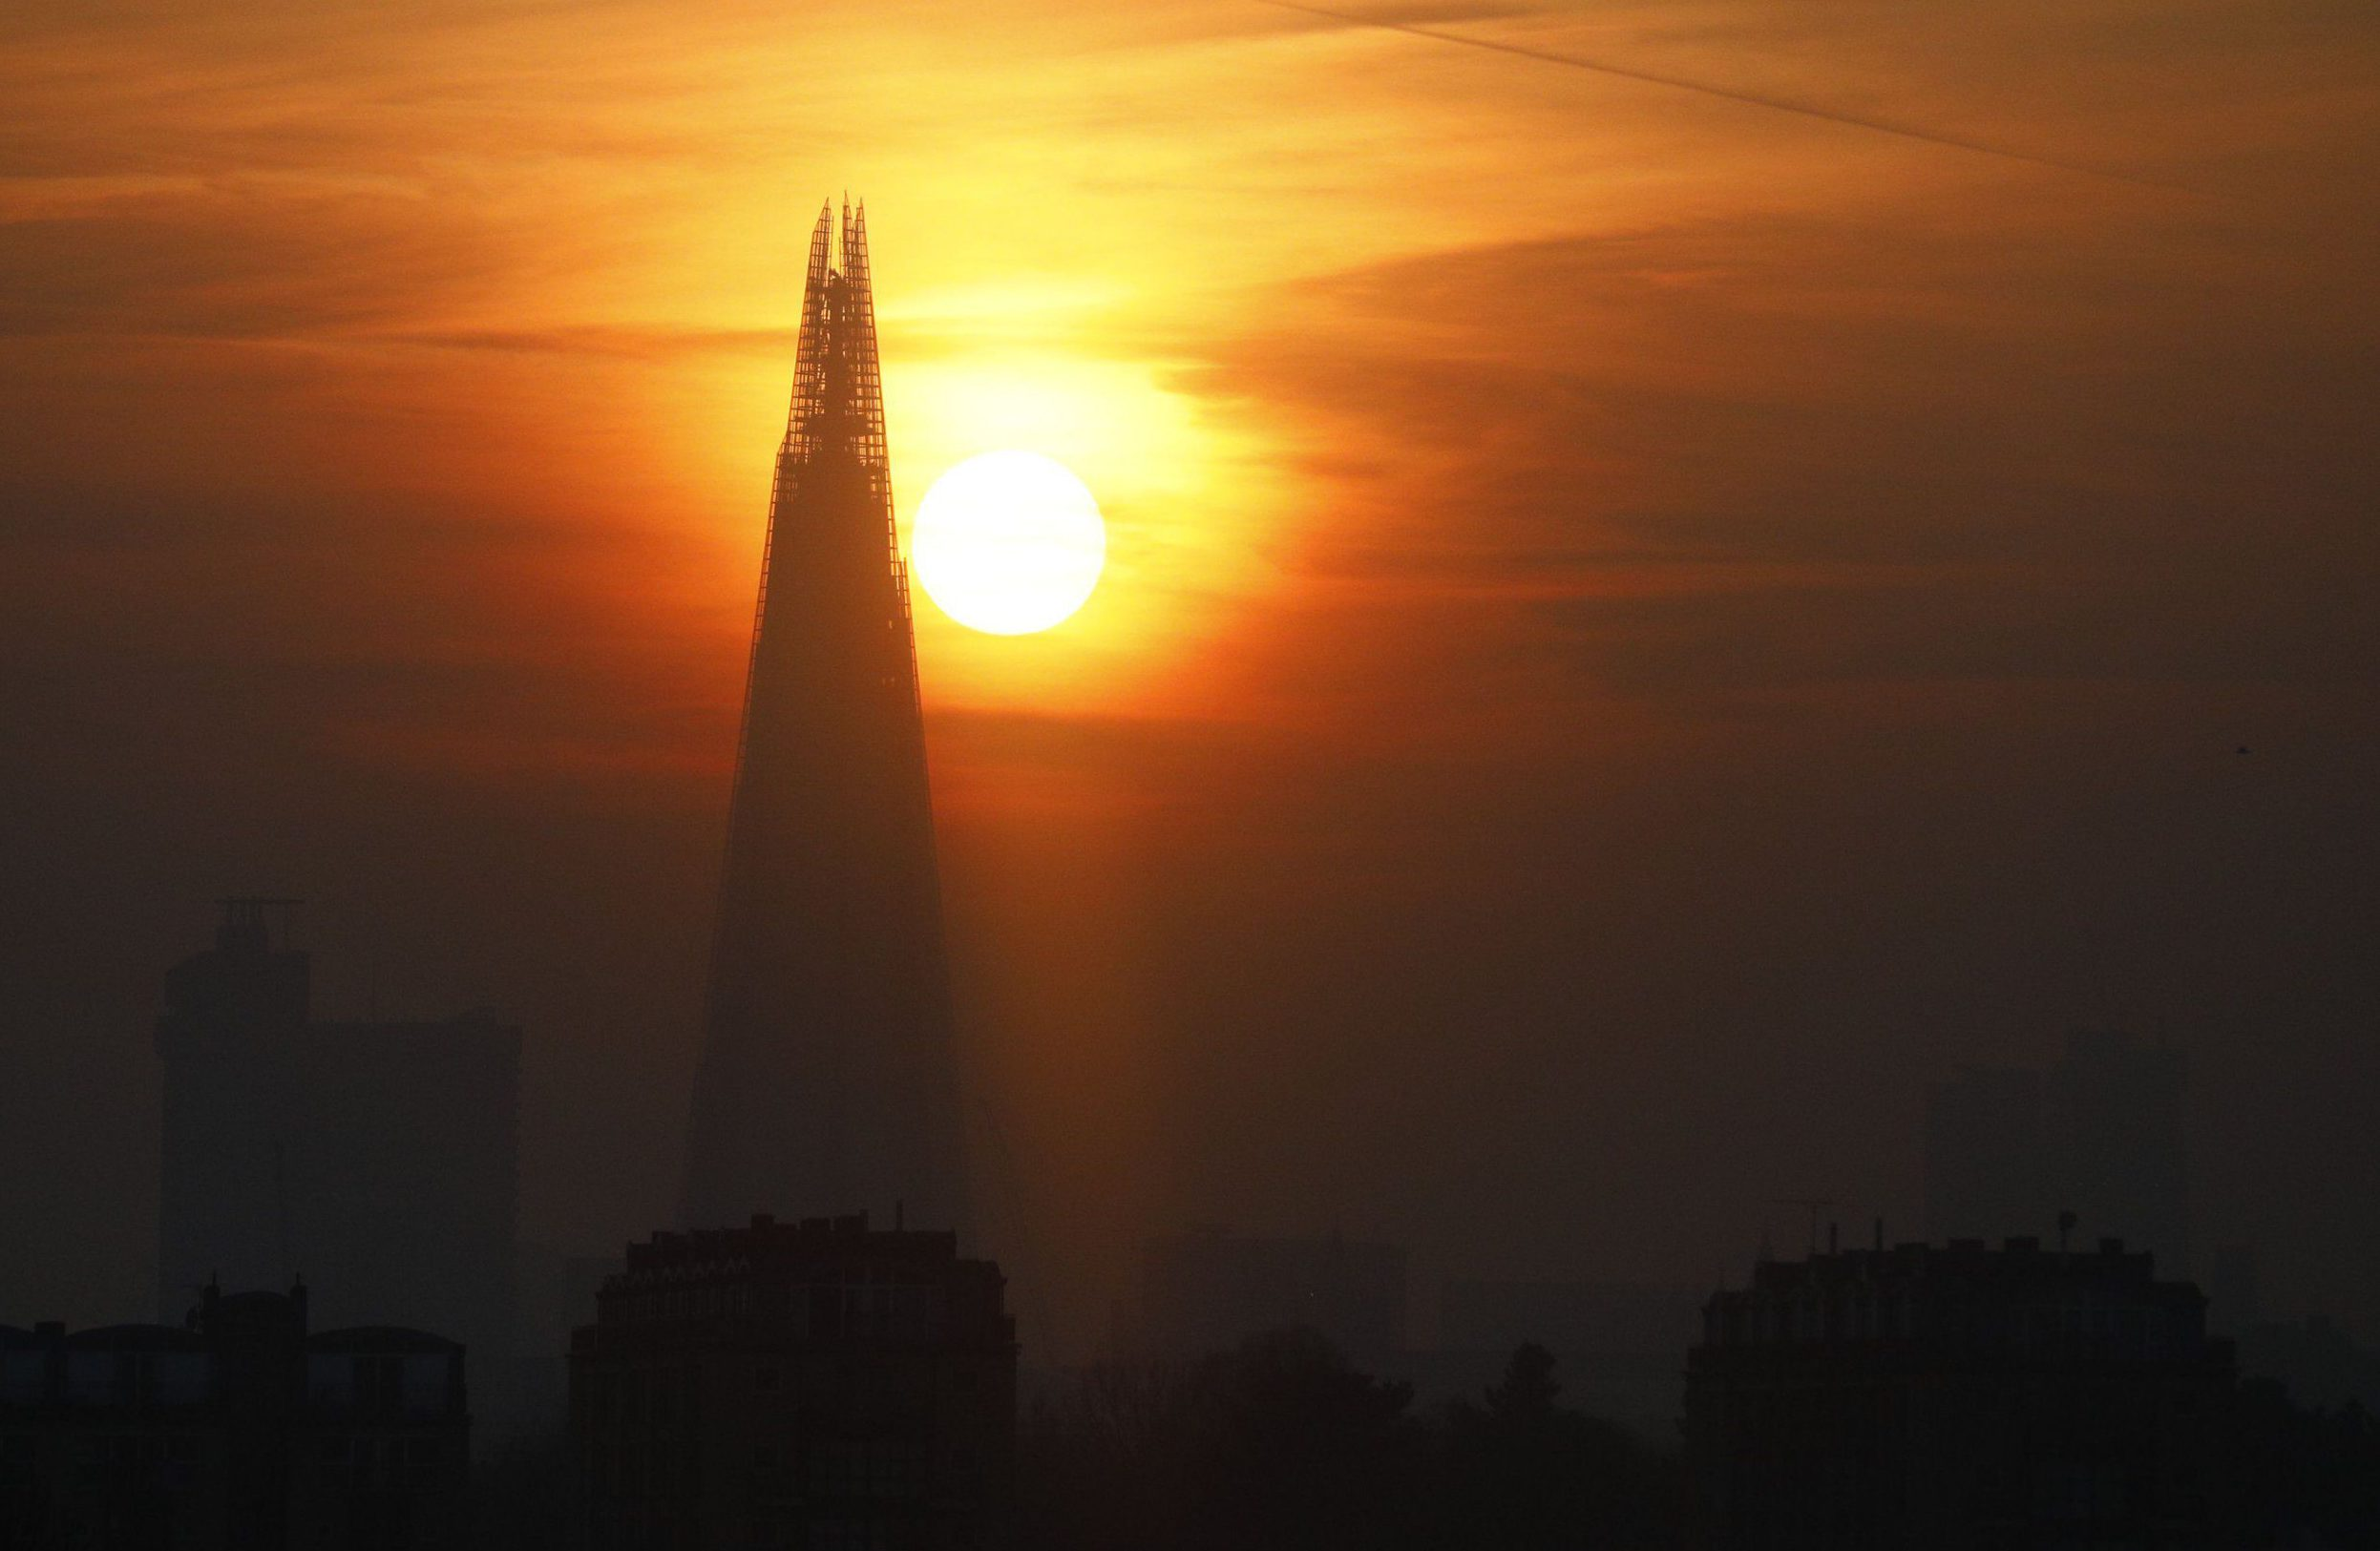 It's too hot! 10 reasons why I wish this sweaty London heatwave would end